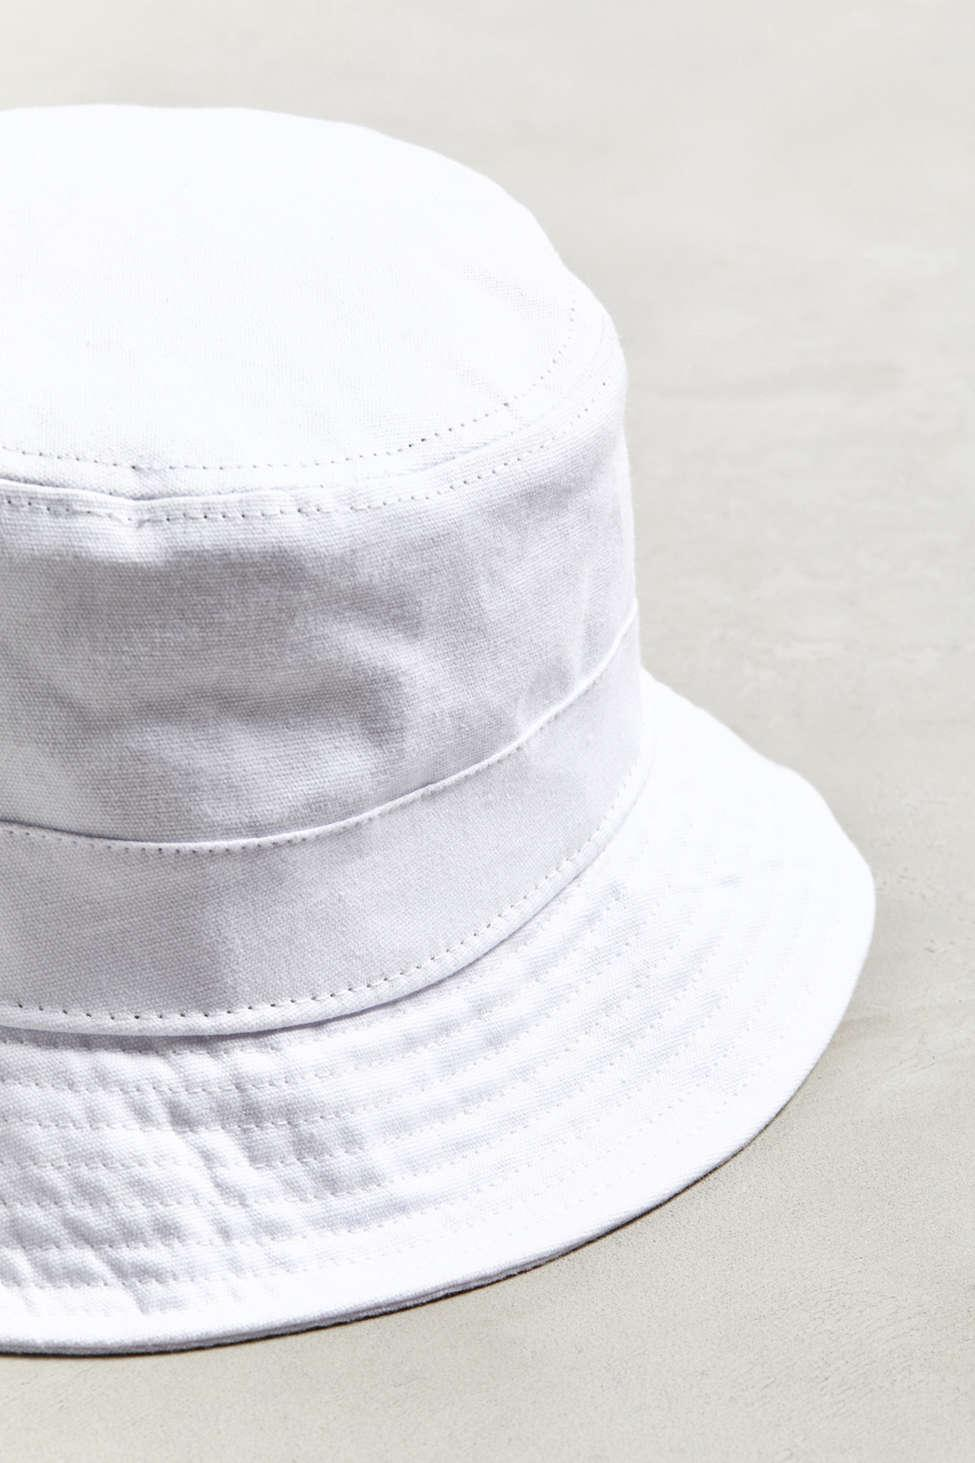 6054443df8d4c Urban Outfitters - White Uo Canvas Bucket Hat for Men - Lyst. View  fullscreen